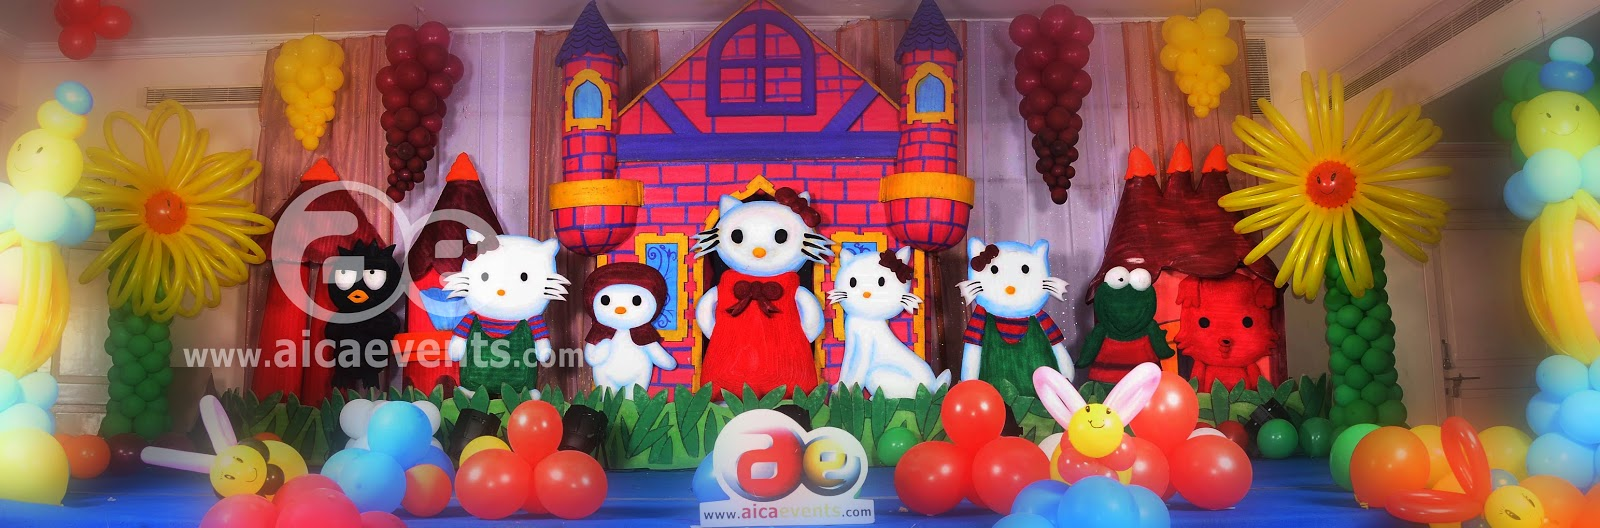 Aicaevents India Hello Kitty Theme Birthday Decorations